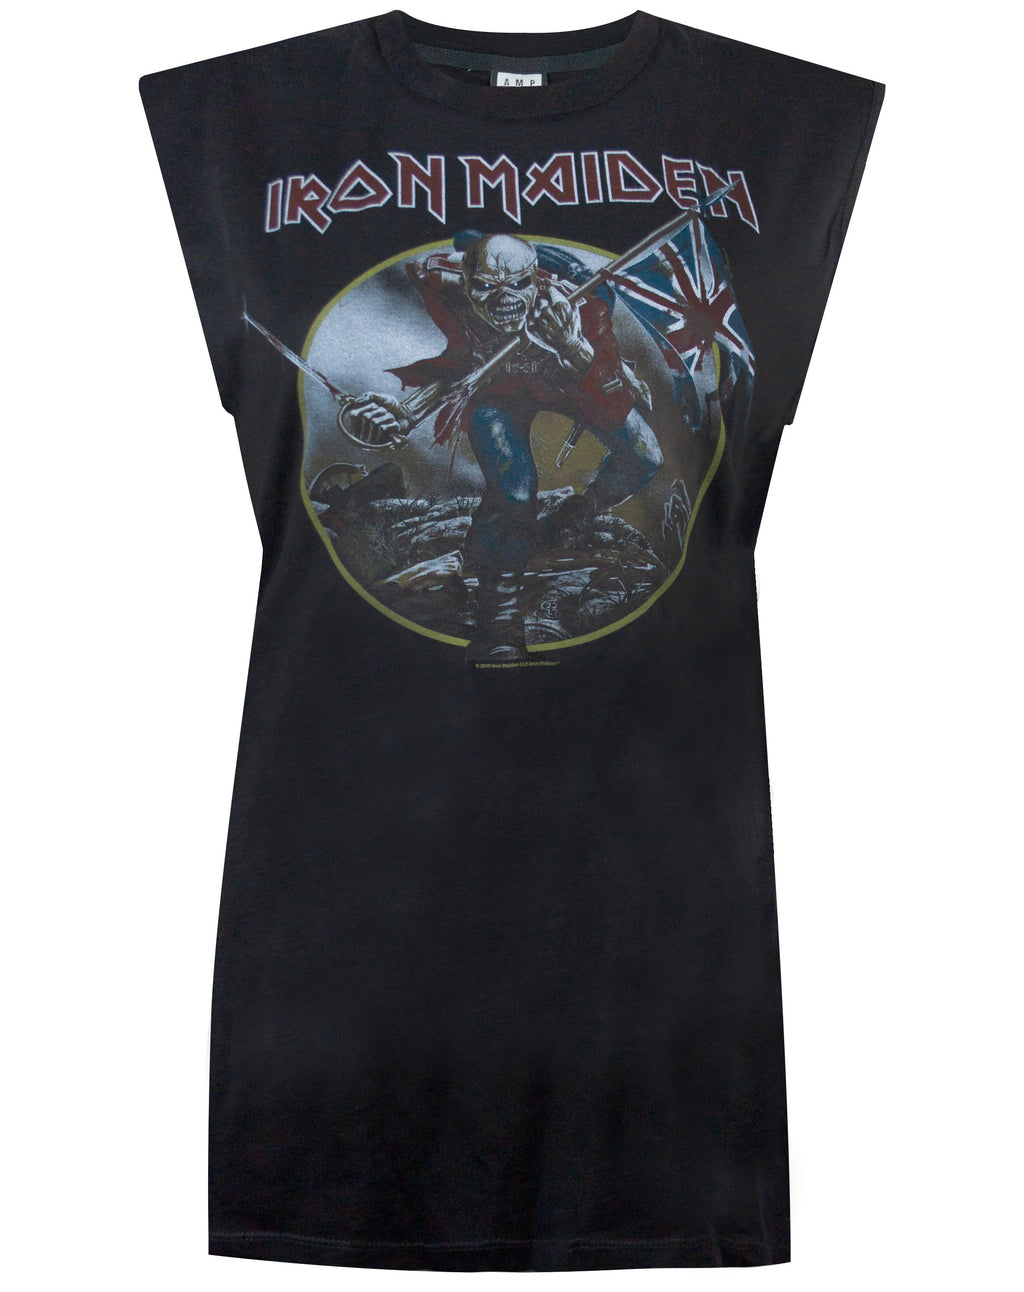 Amplified Iron Maiden Trooper Women's Sleeveless T-shirt